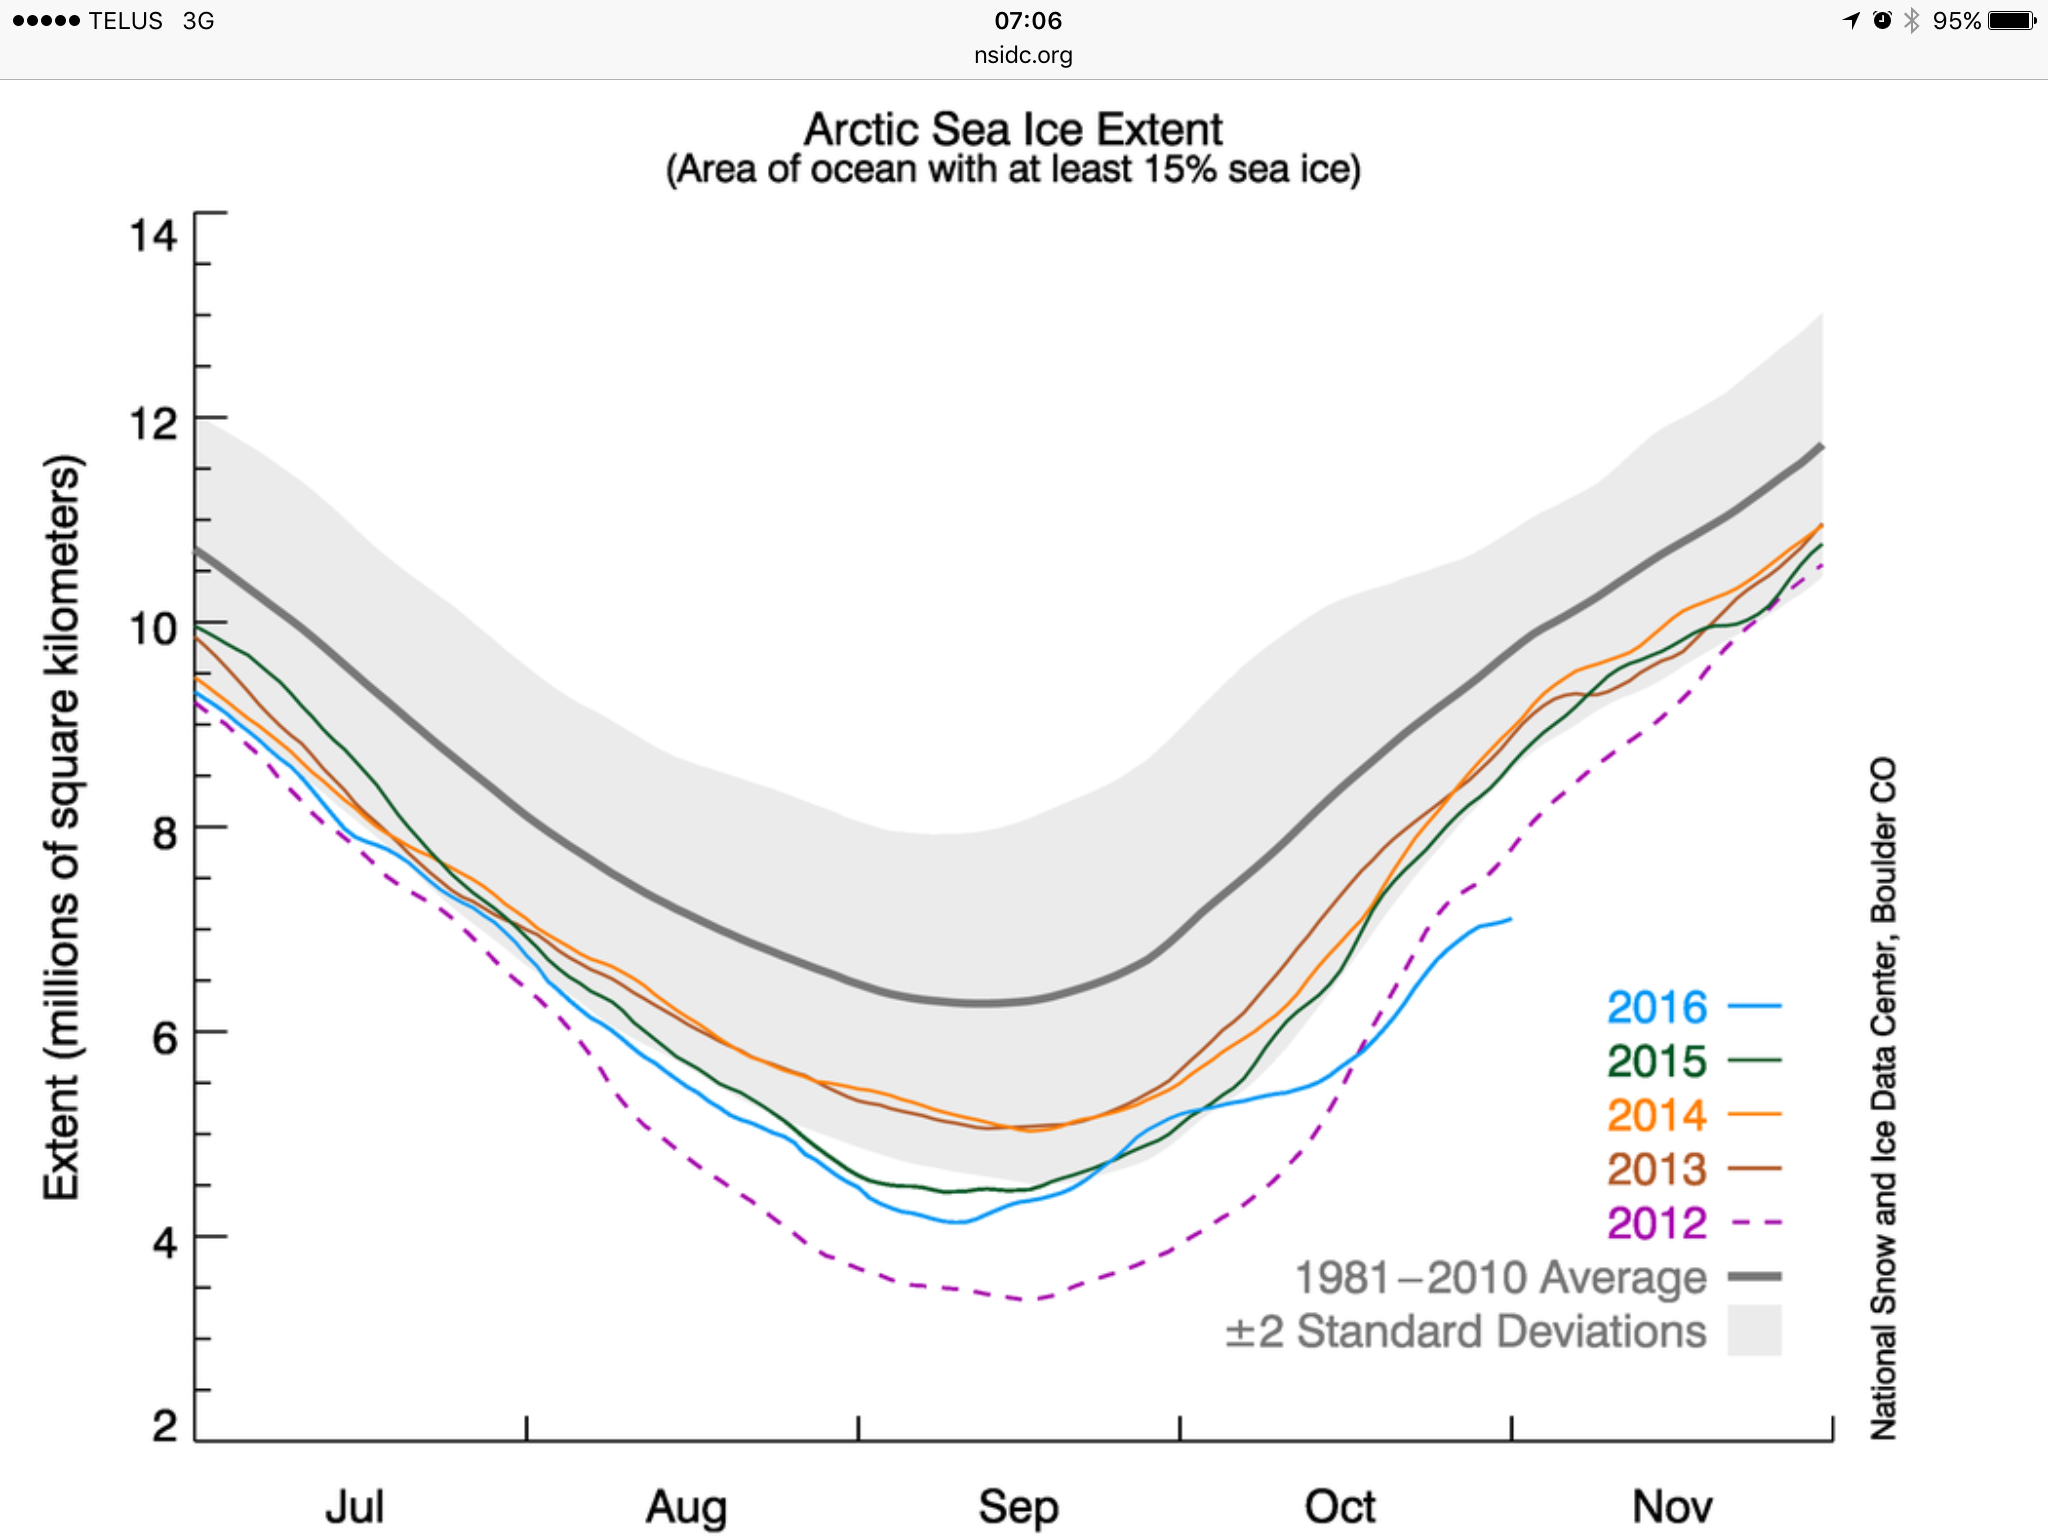 Figure 2a. The graph above shows Arctic sea ice extent as of November 1, 2016, along with daily ice extent data for four previous years. 2016 is shown in blue, 2015 in green, 2014 in orange, 2013 in brown, and 2012 in purple. The 1981 to 2010 average is in dark gray. The gray area around the average line shows the two standard deviation range of the data. Sea Ice Index data. Credit: National Snow and Ice Data Center